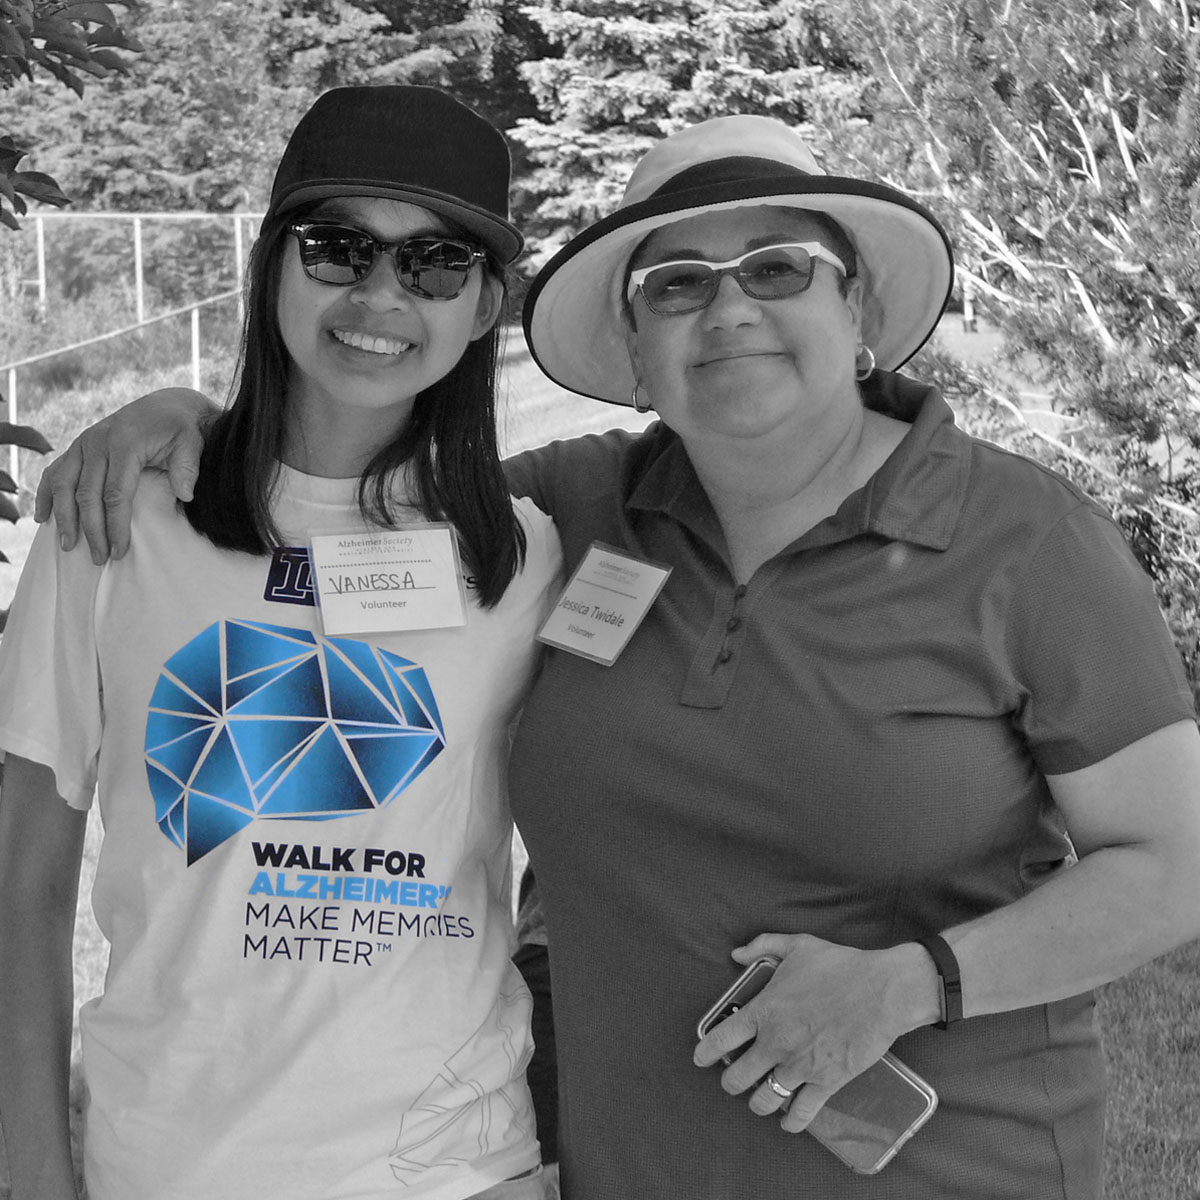 Two participants standing together at their Investors Group Walk for Alzheimer's